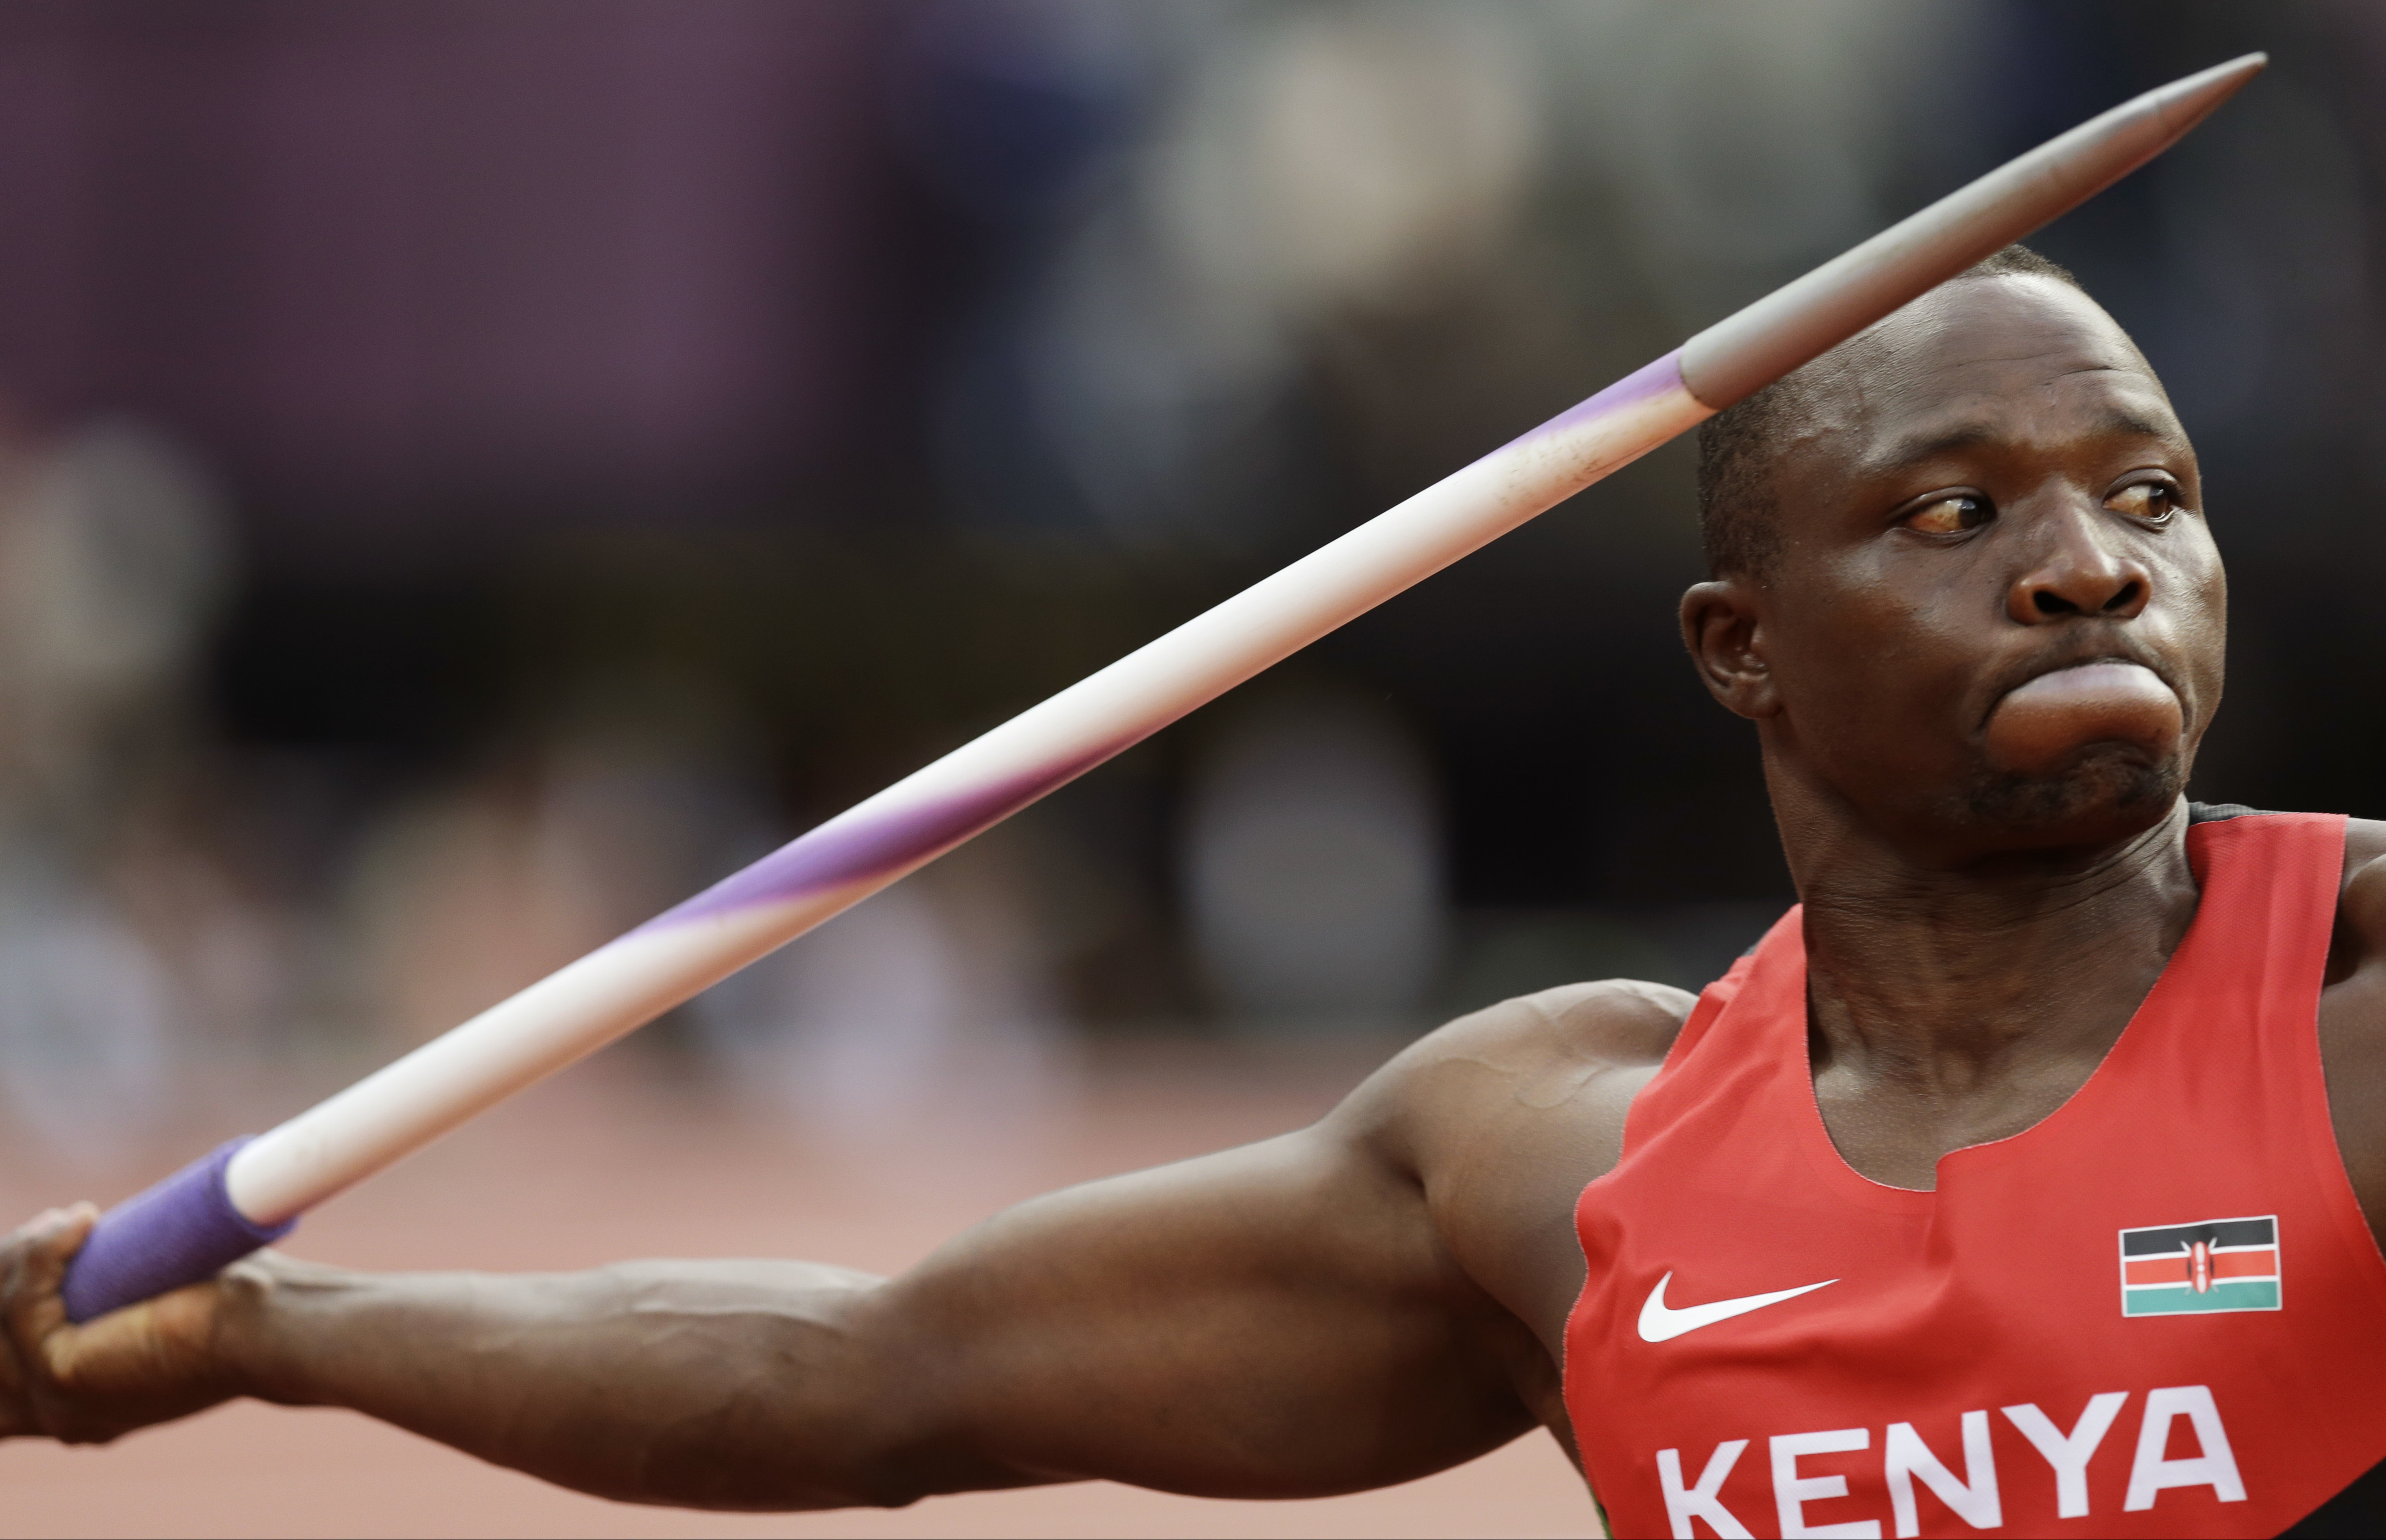 FILE - In this Aug. 11, 2012 file photo, Kenya's Julius Yego takes a throw in the men's javelin throw final during the athletics in the Olympic Stadium at the 2012 Summer Olympics, London. Julius Yego wanted to be an athlete, only he couldnt run very fast